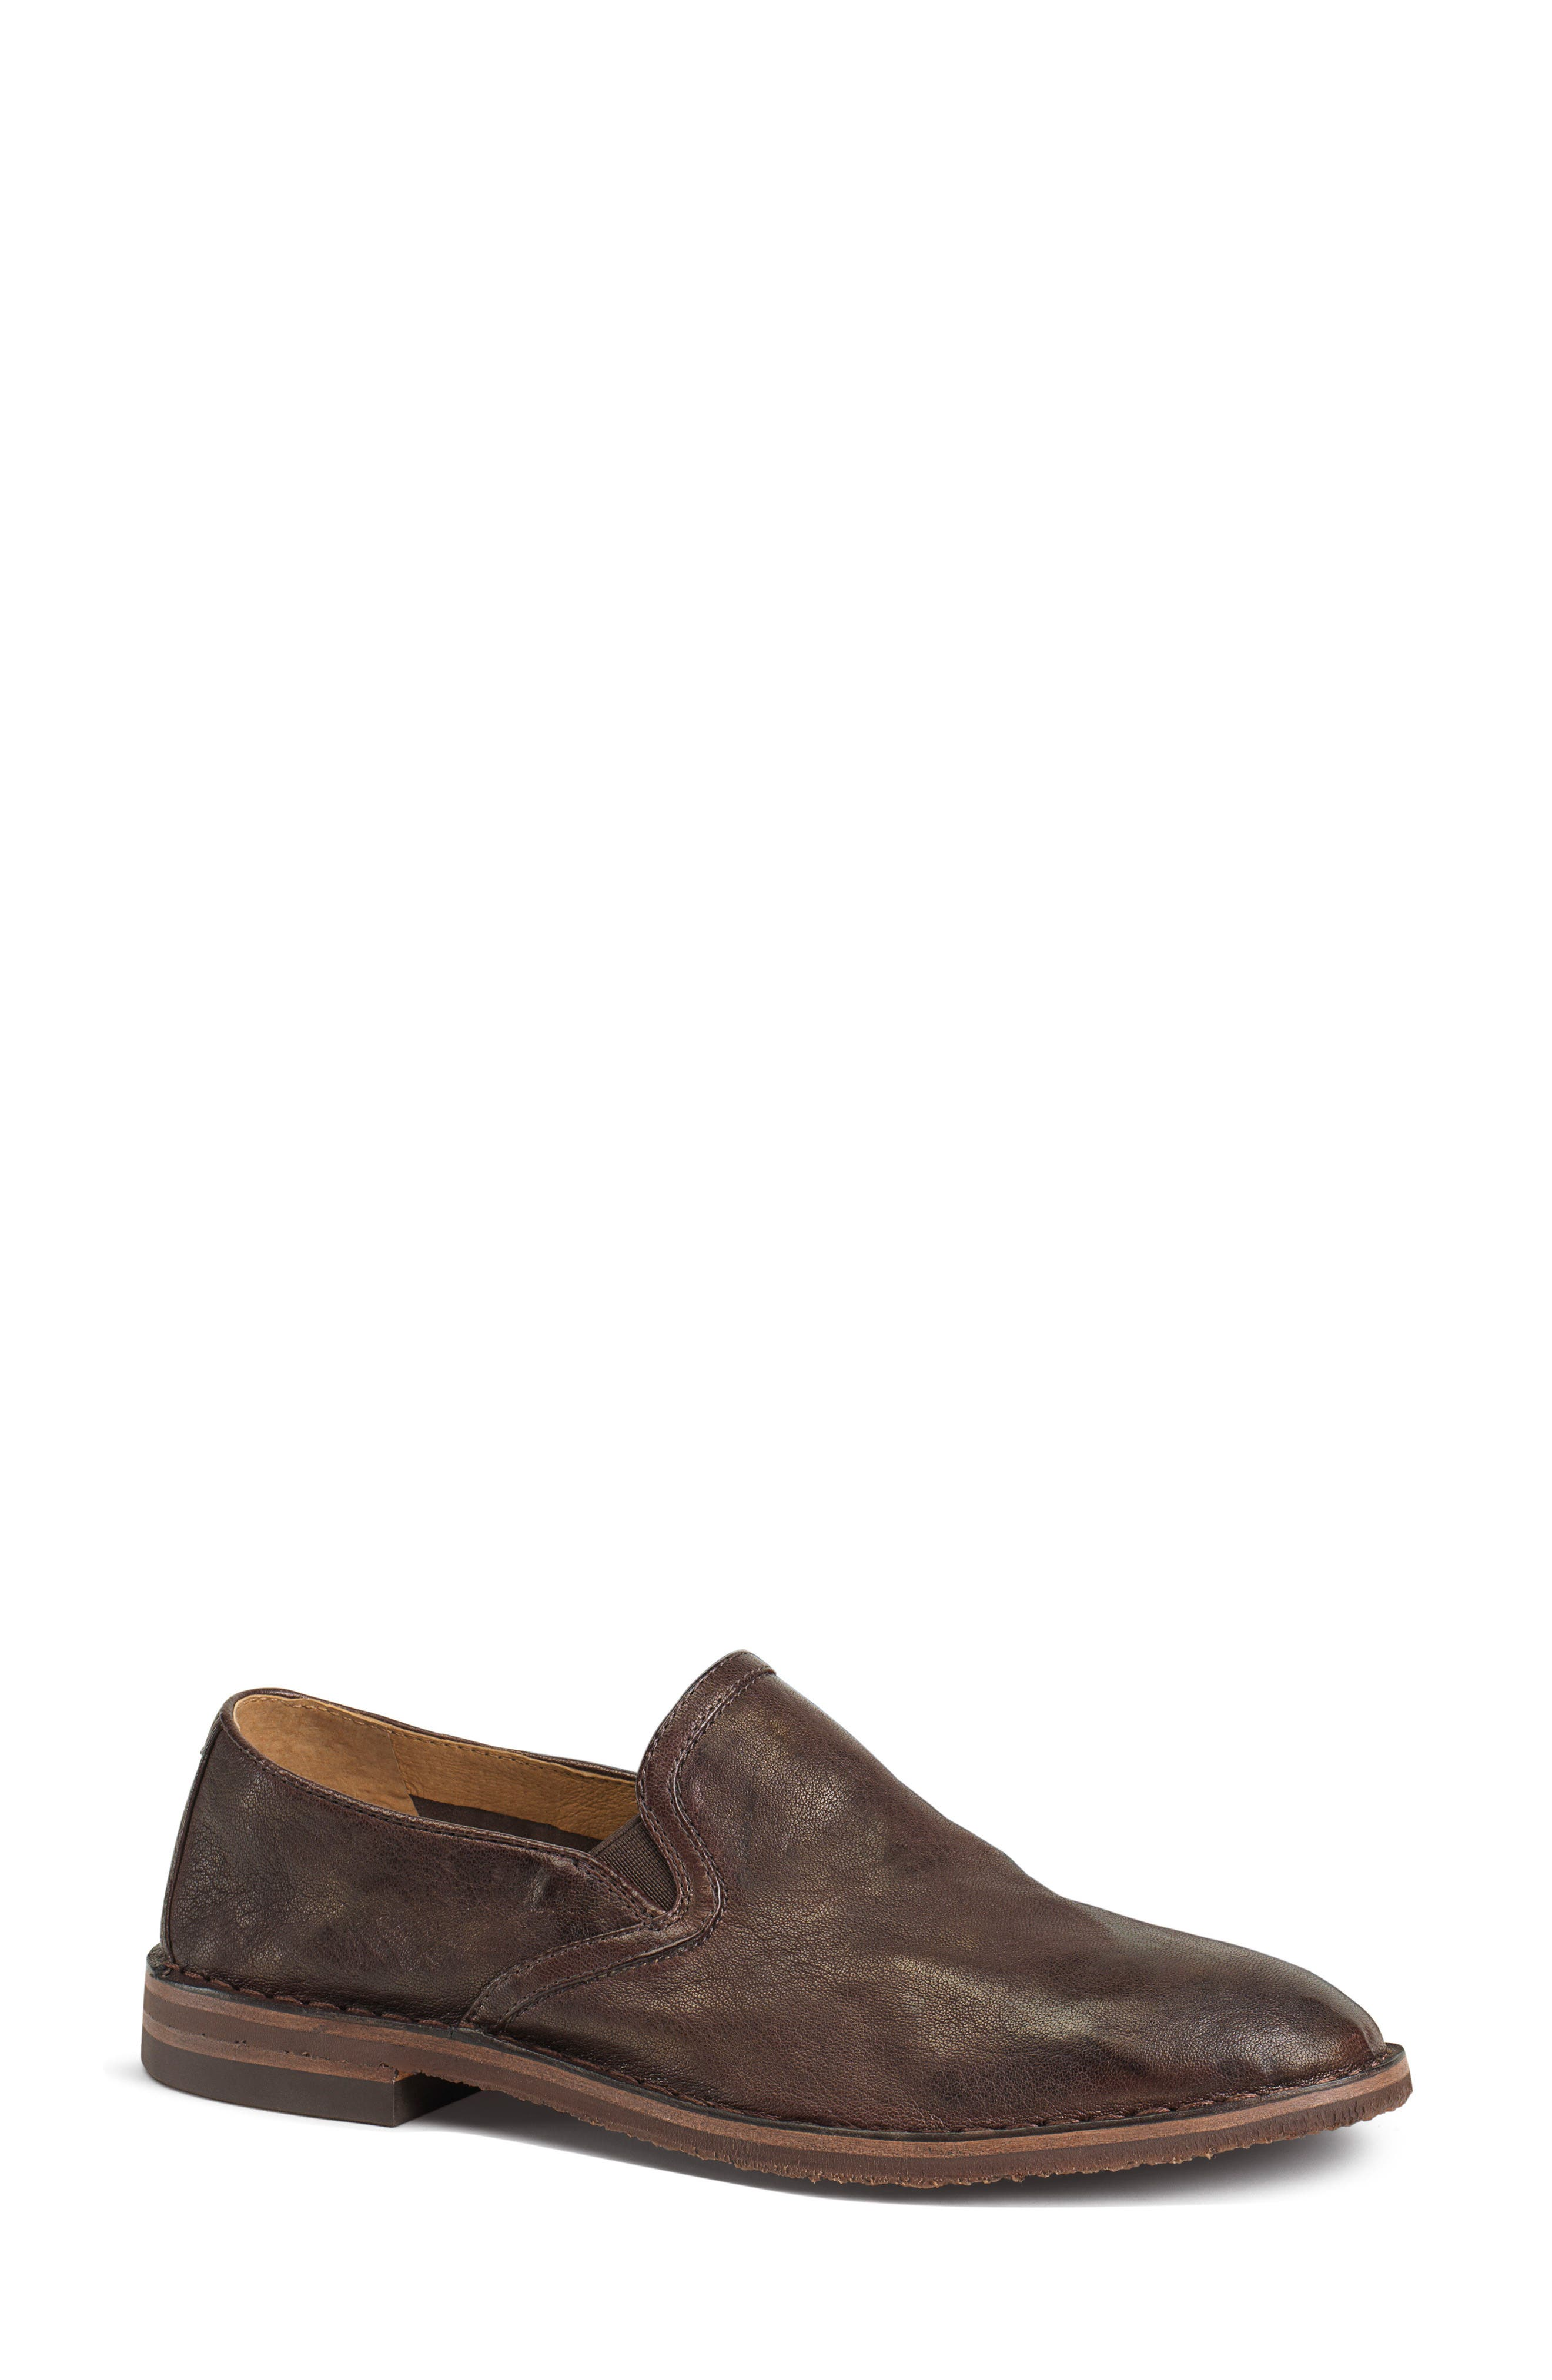 'Ali' Flat,                             Main thumbnail 1, color,                             Brown Leather